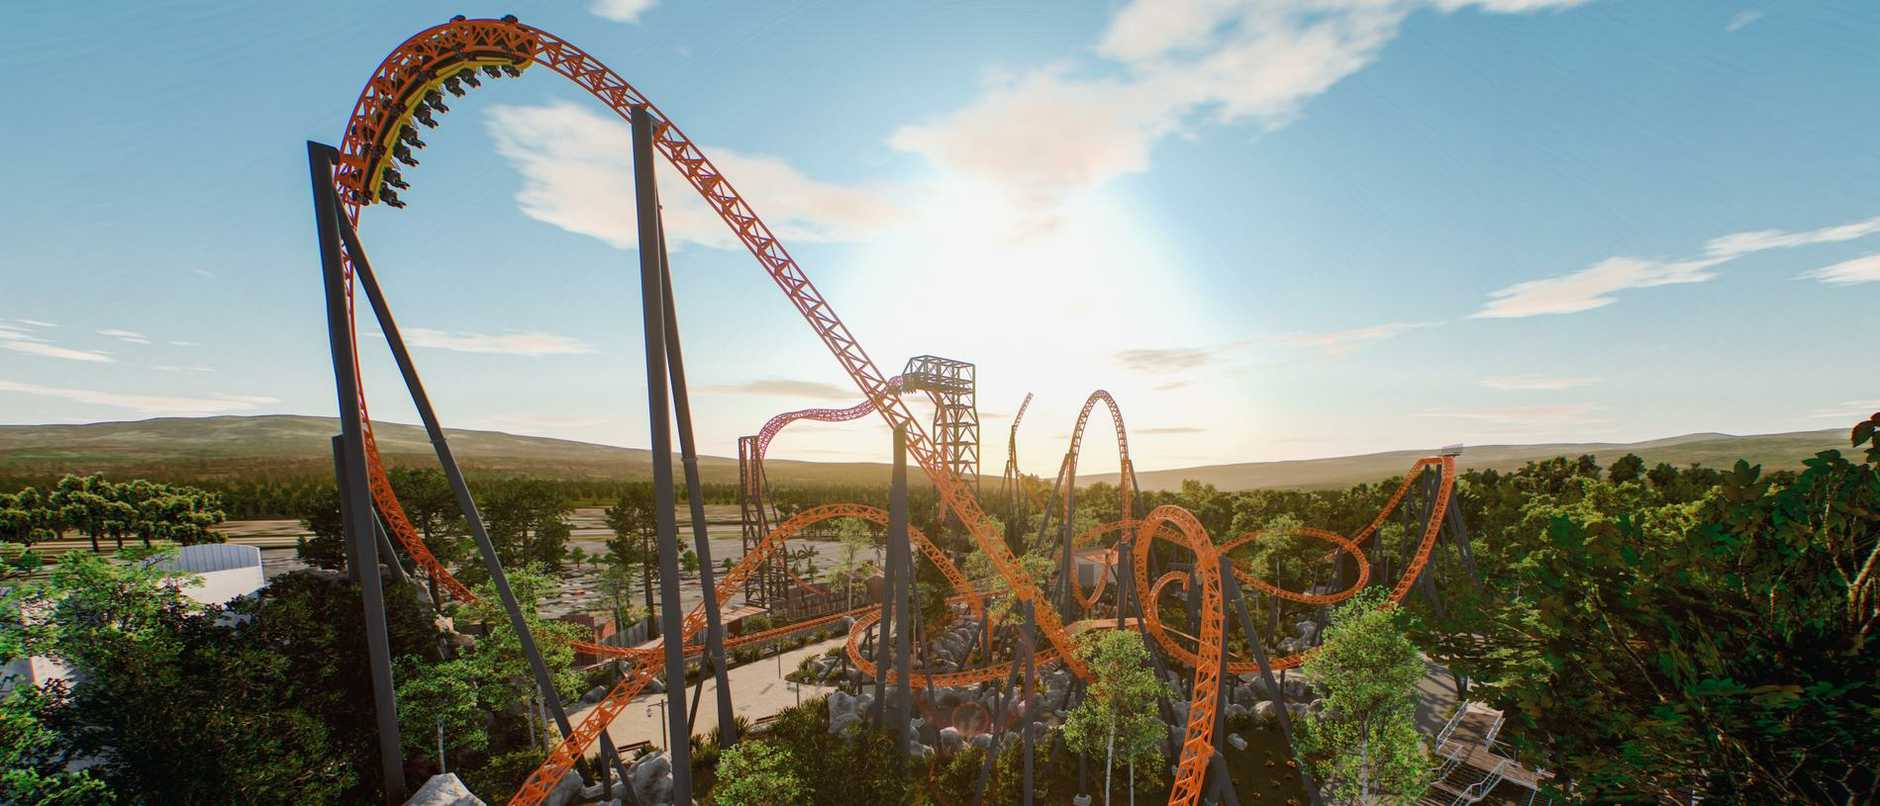 Dreamwold has announced it will start work on its new flagship $32m thrill ride. WATCH THE CRAZY POV VIDEO.